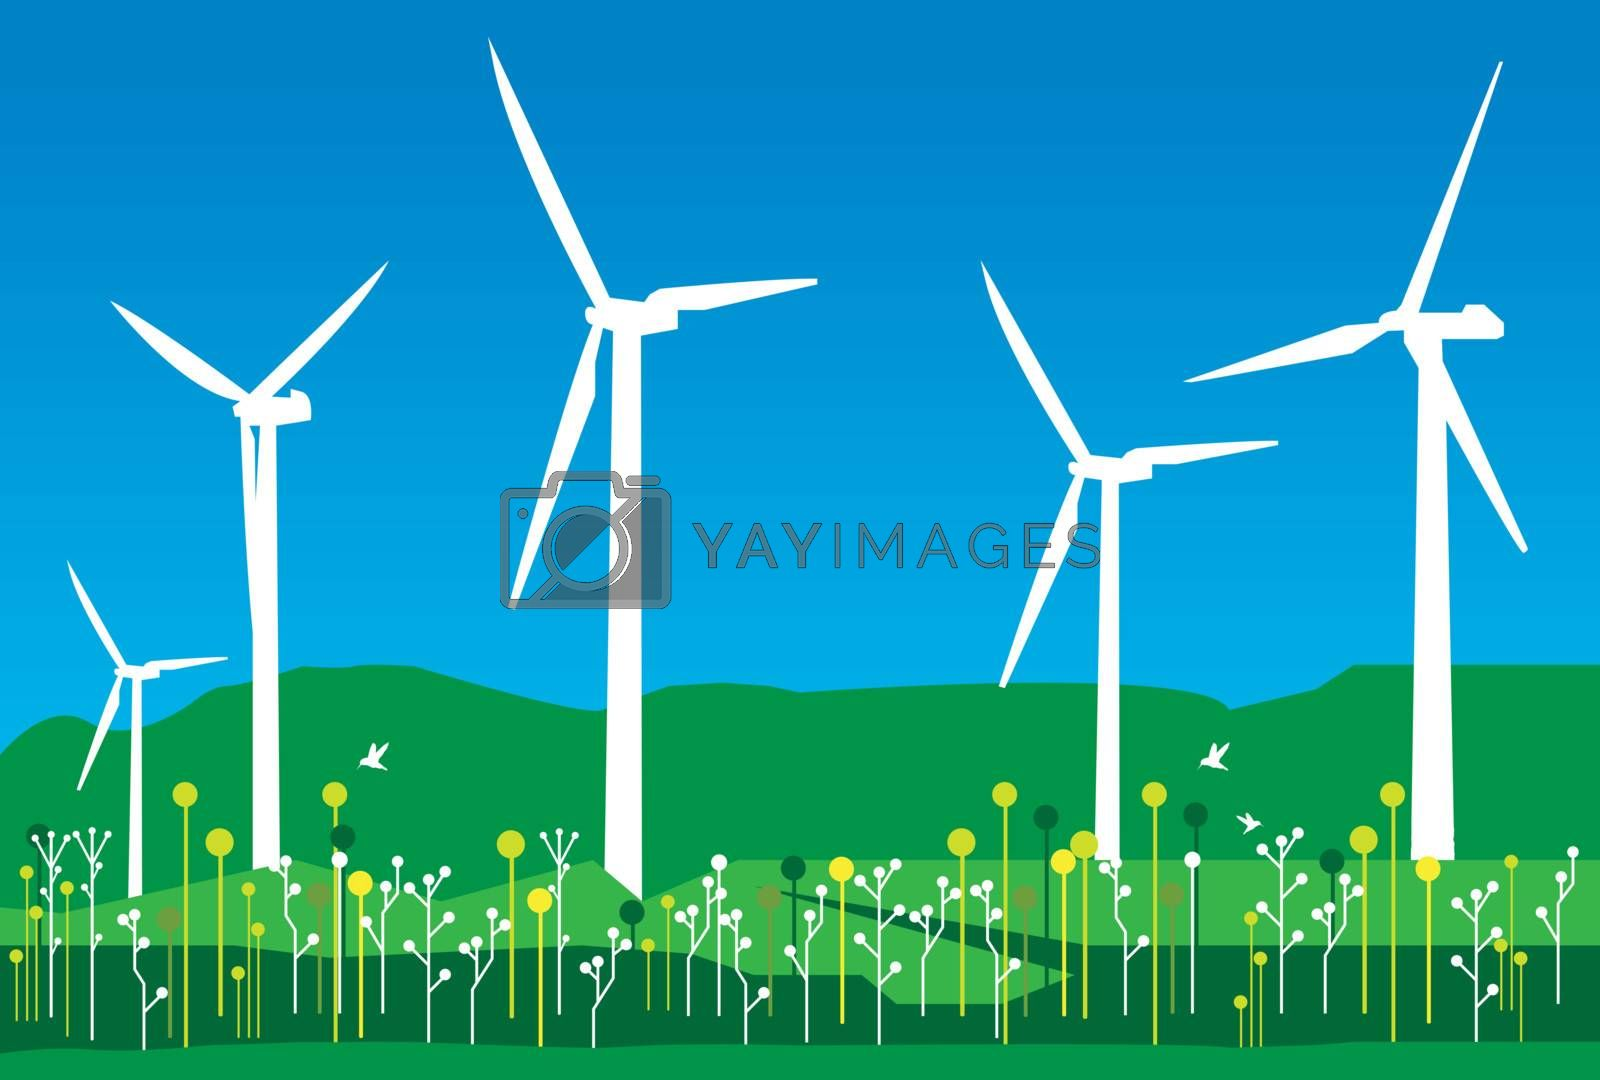 Royalty free image of Wind Field, mountains and flowers graphics by nirots